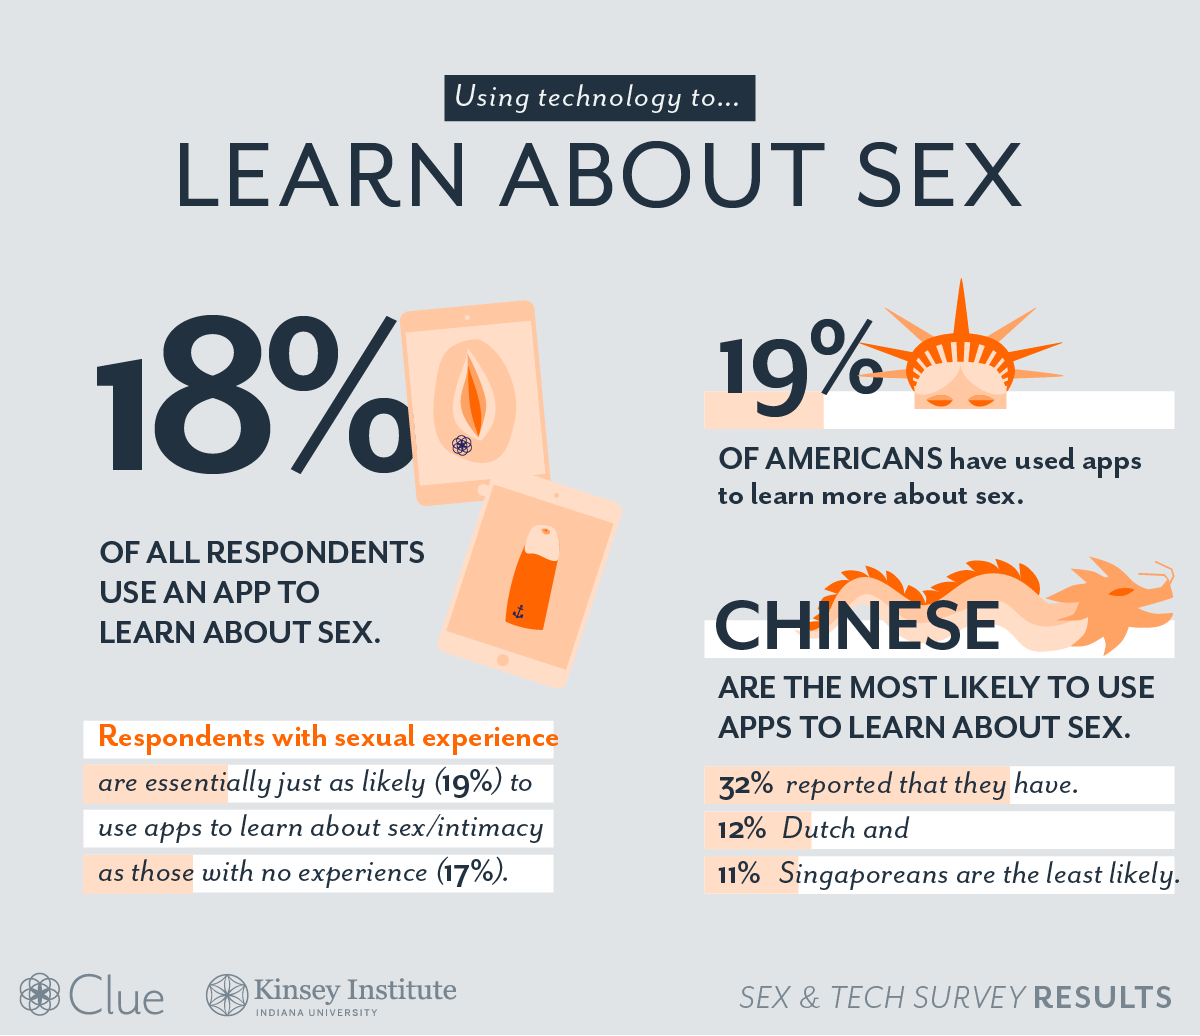 sex-and-tech-survey-sex@2x